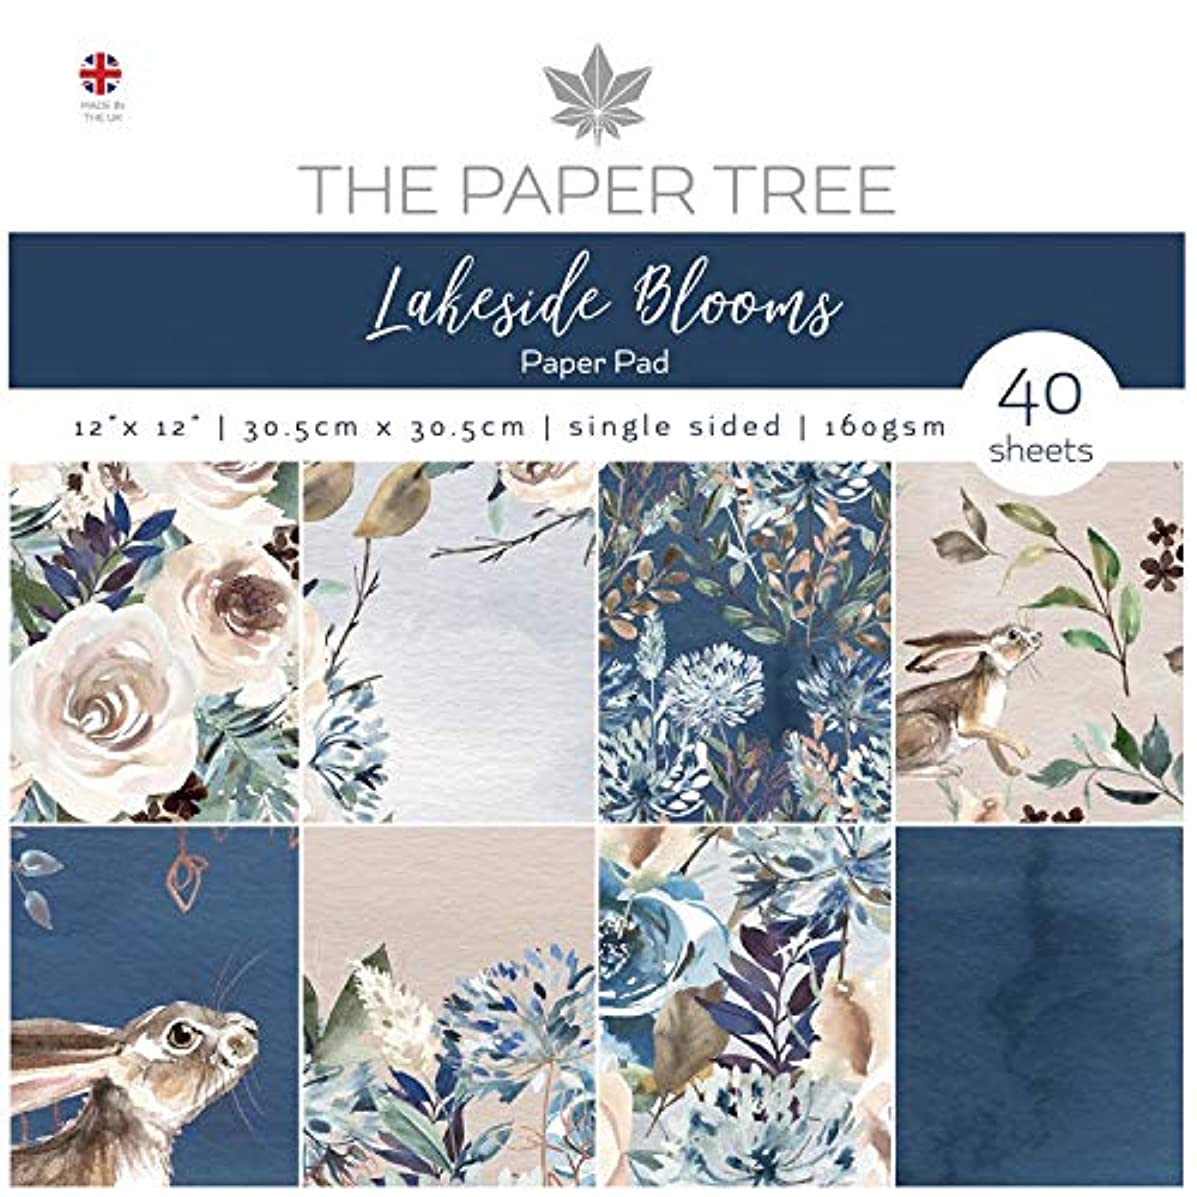 The Paper Tree Lakeside Blooms 12